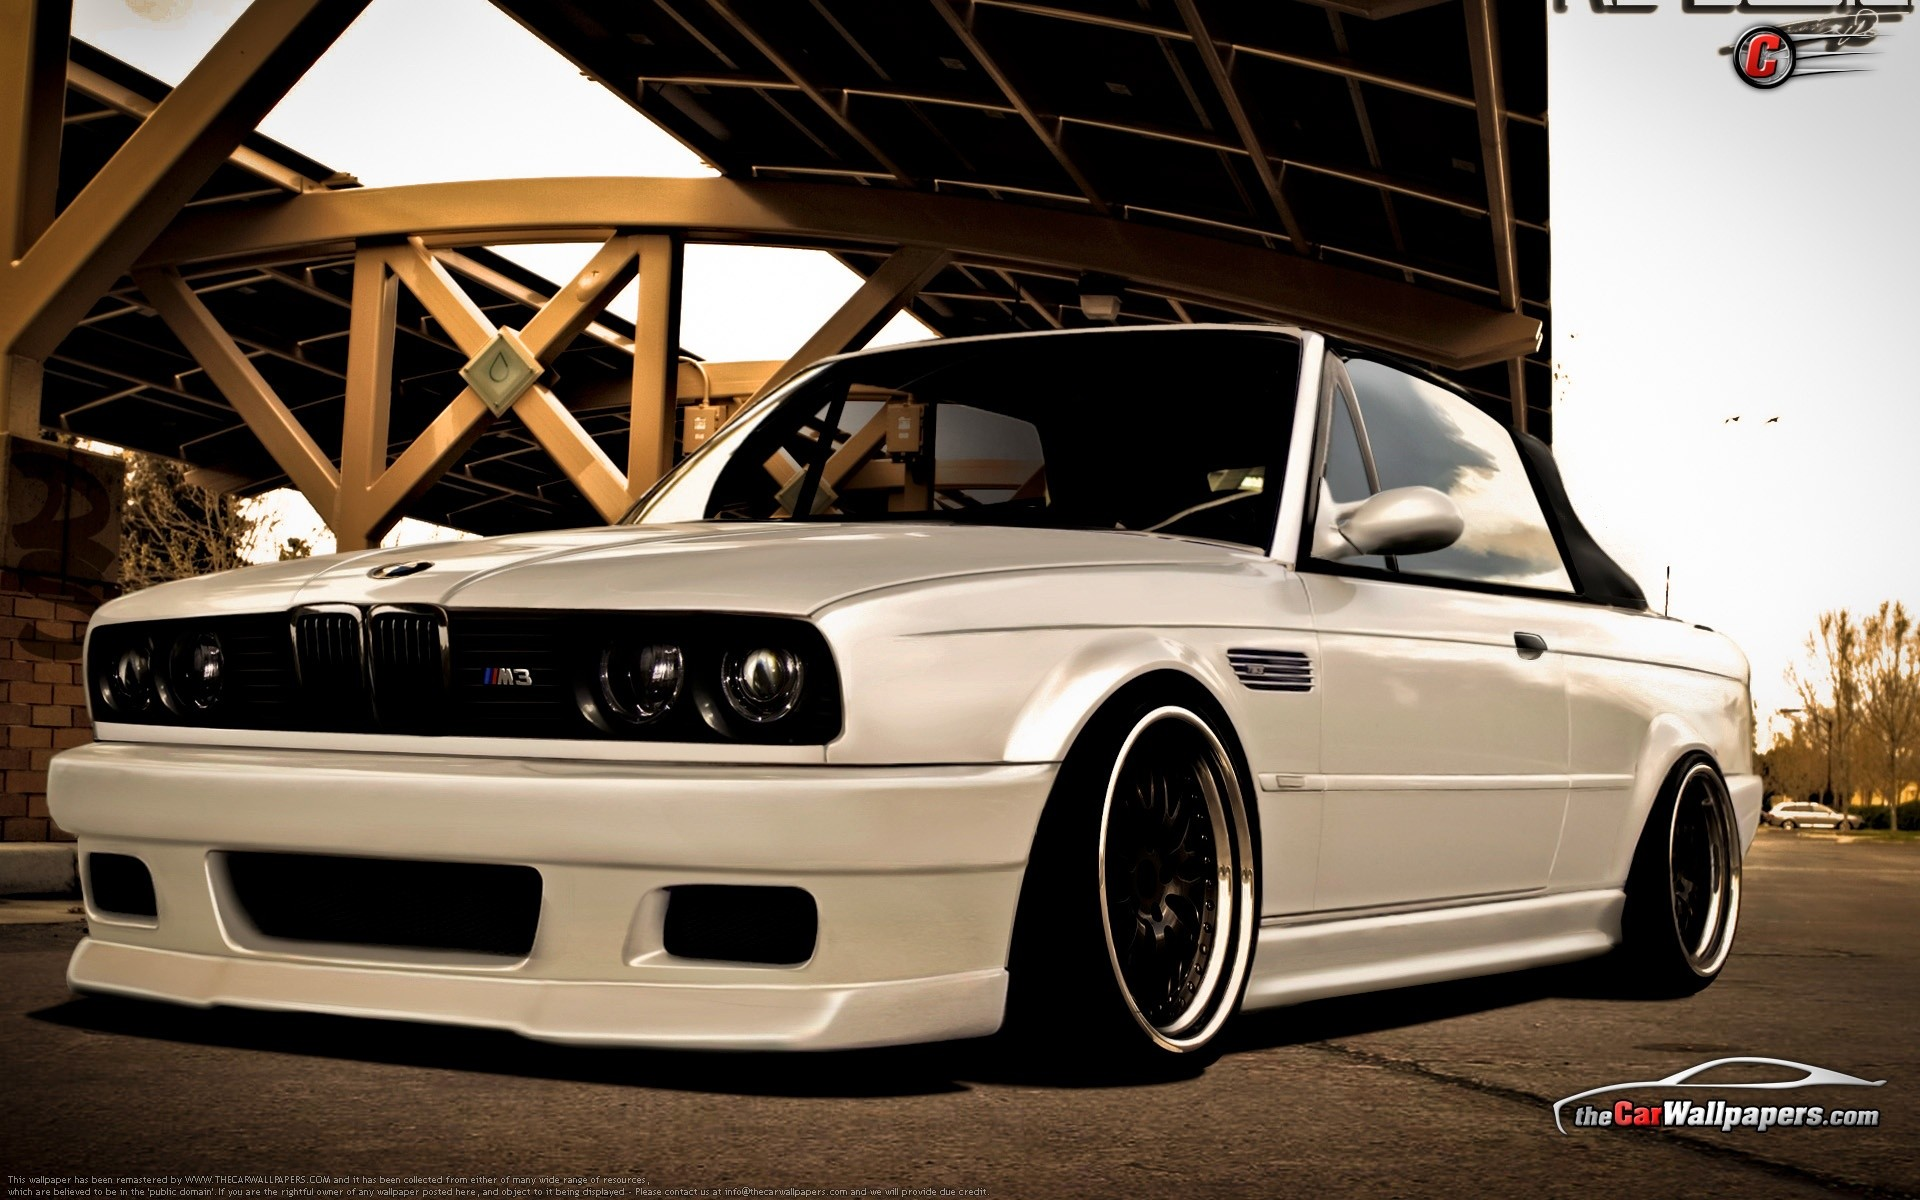 Bmw E30 Wallpaper Phone No 1 Wallpaper Hd